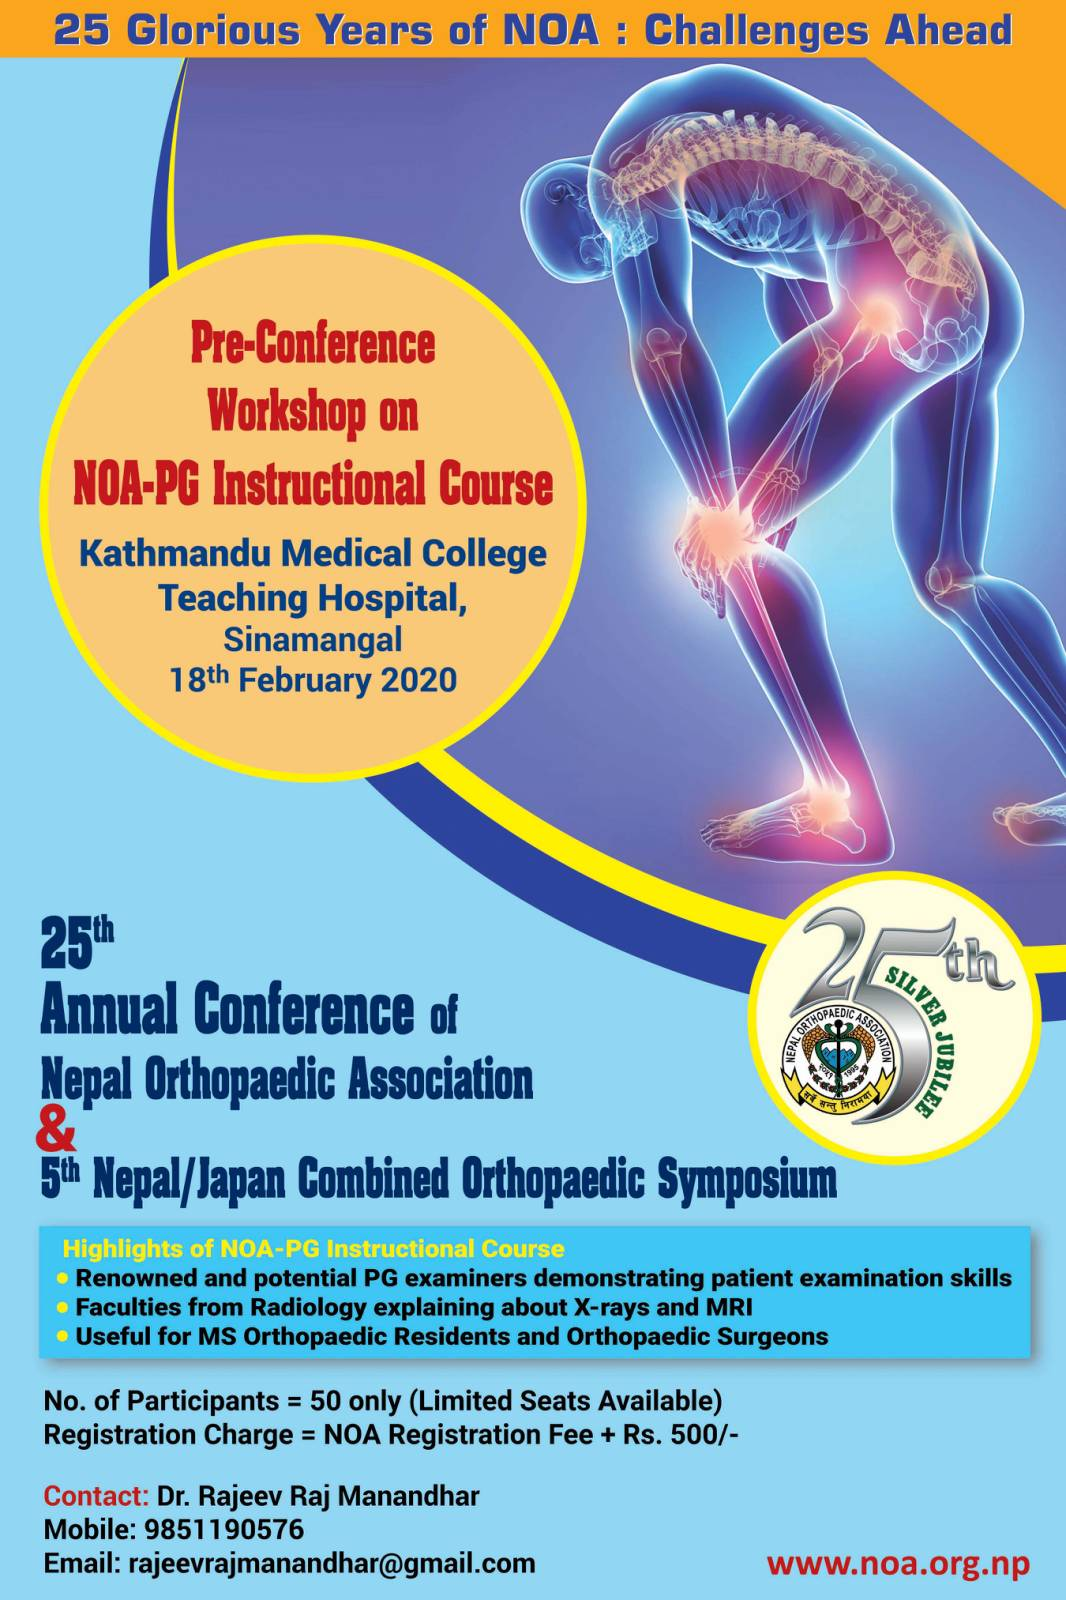 noa-pg-instructional-course-18th-february-2020